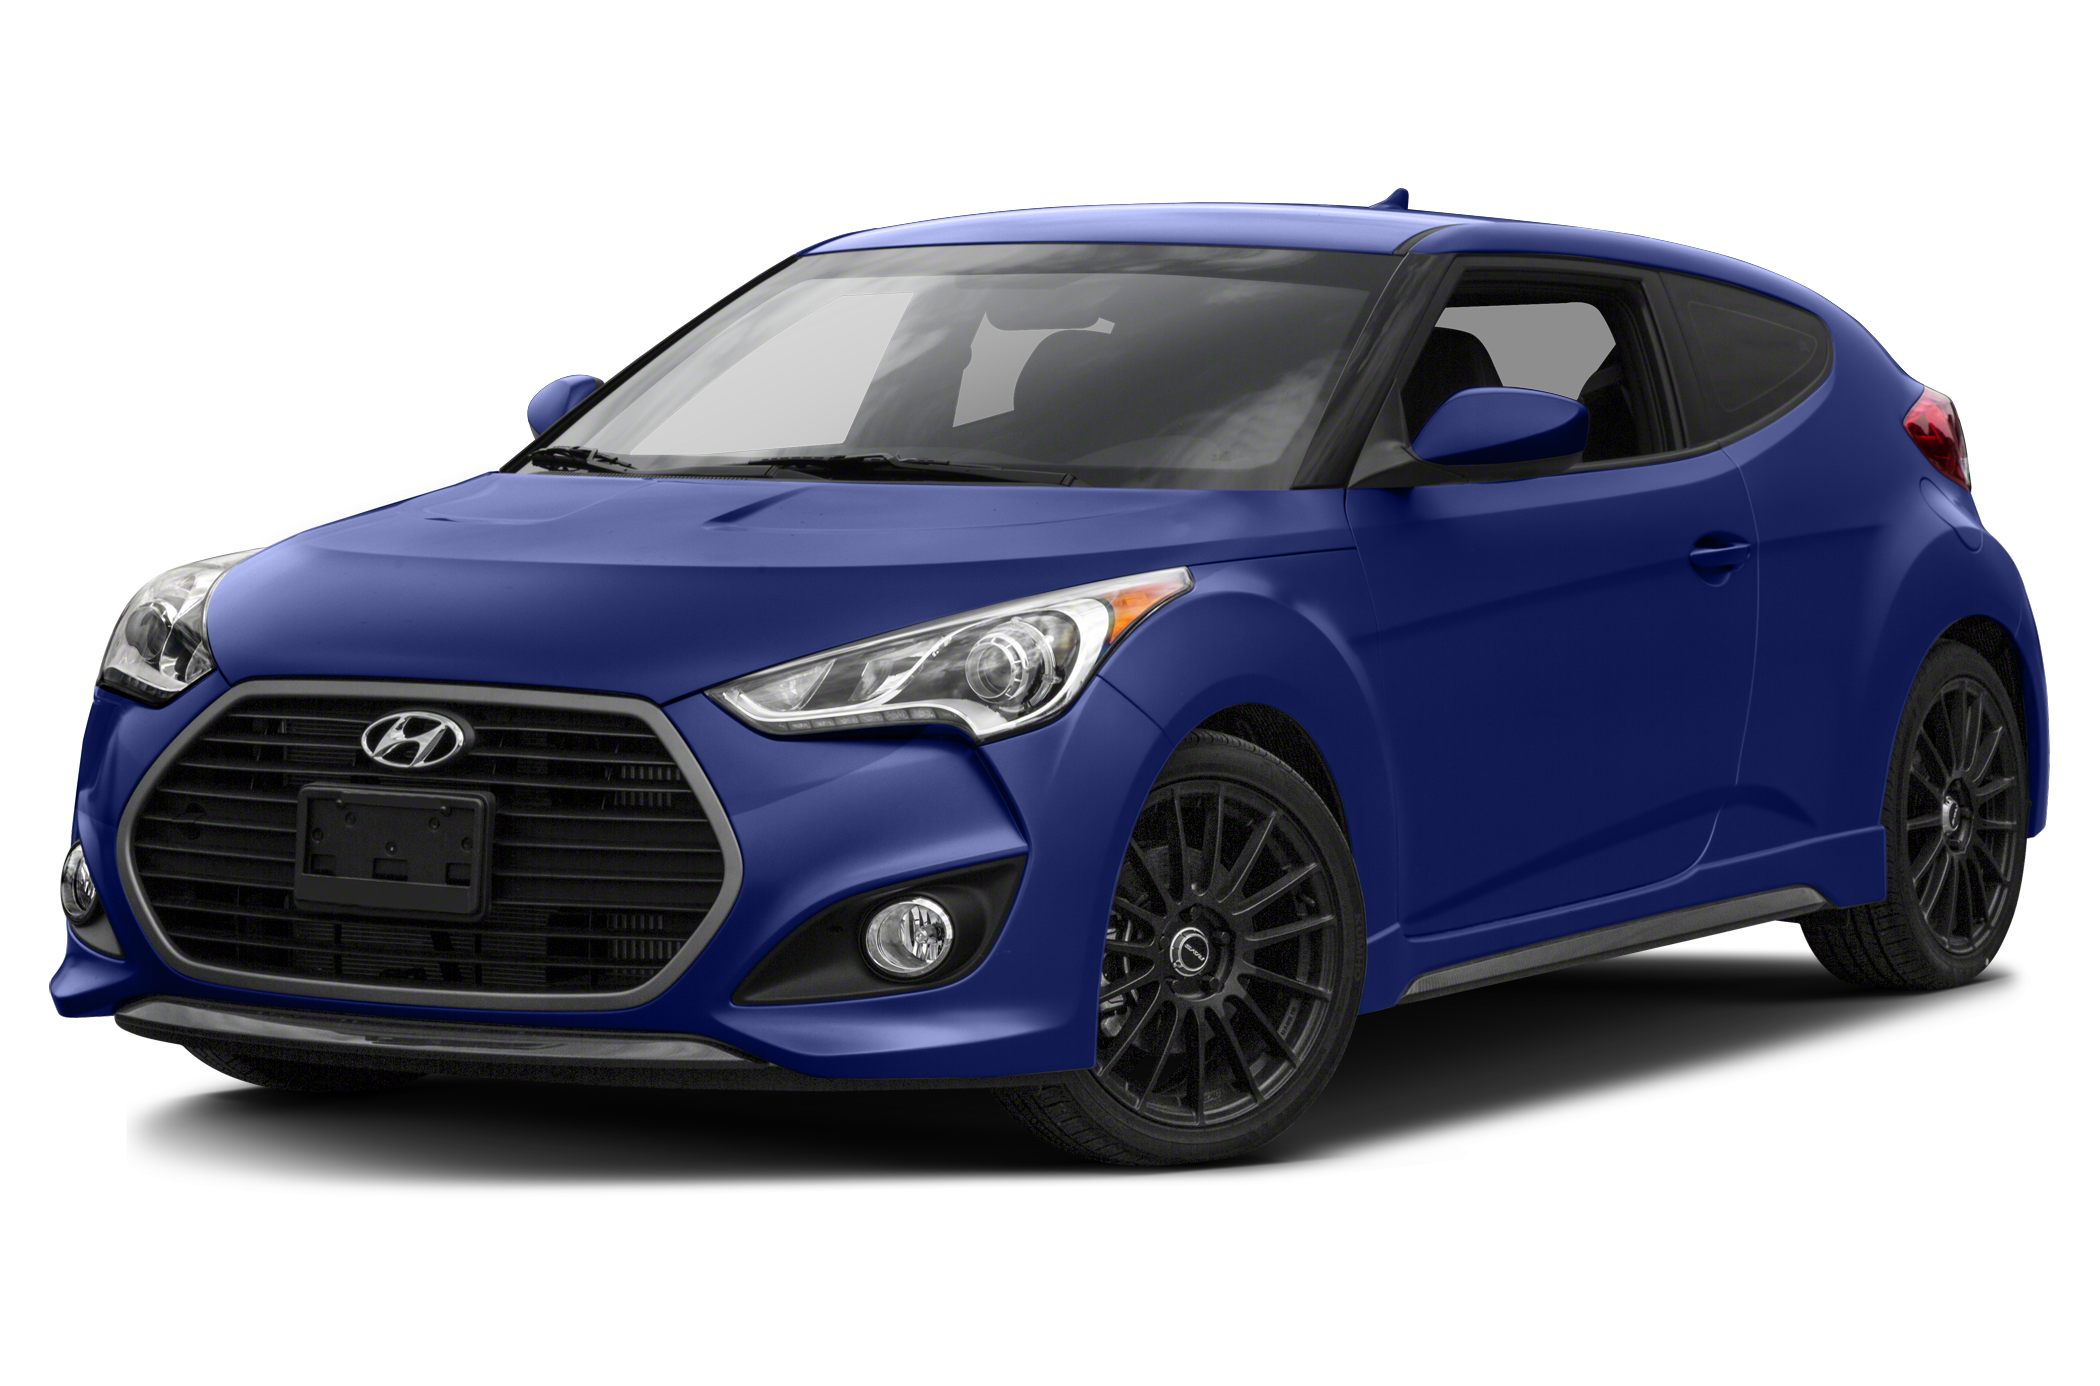 2016 Hyundai Veloster Turbo Rally Edition 3dr Hatchback Pricing And Options